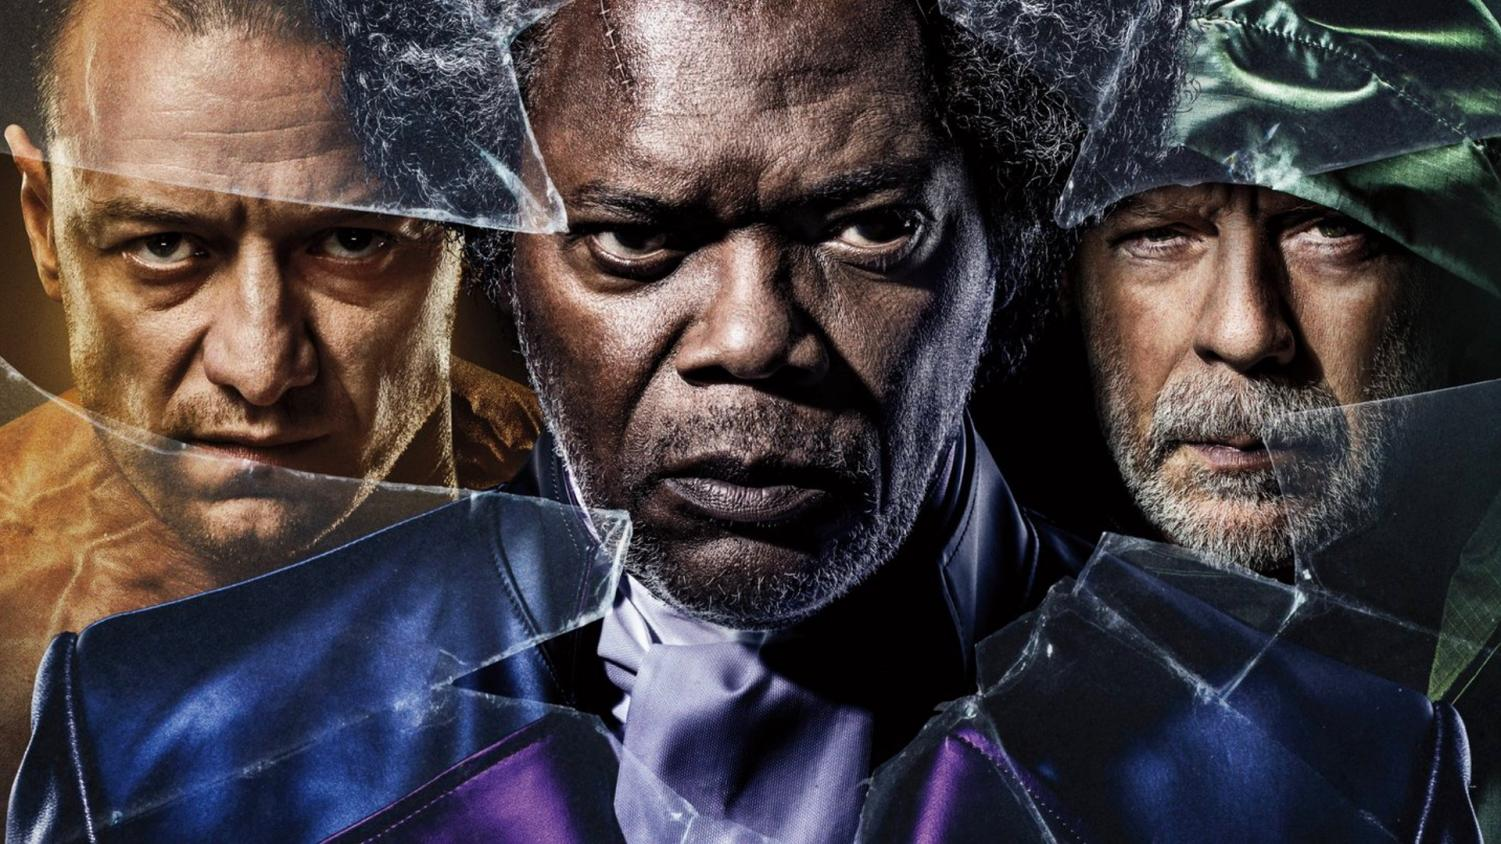 Bruce Willis, Samuel L. Jackson, and James McAvoy star as the three main characters in Glass.